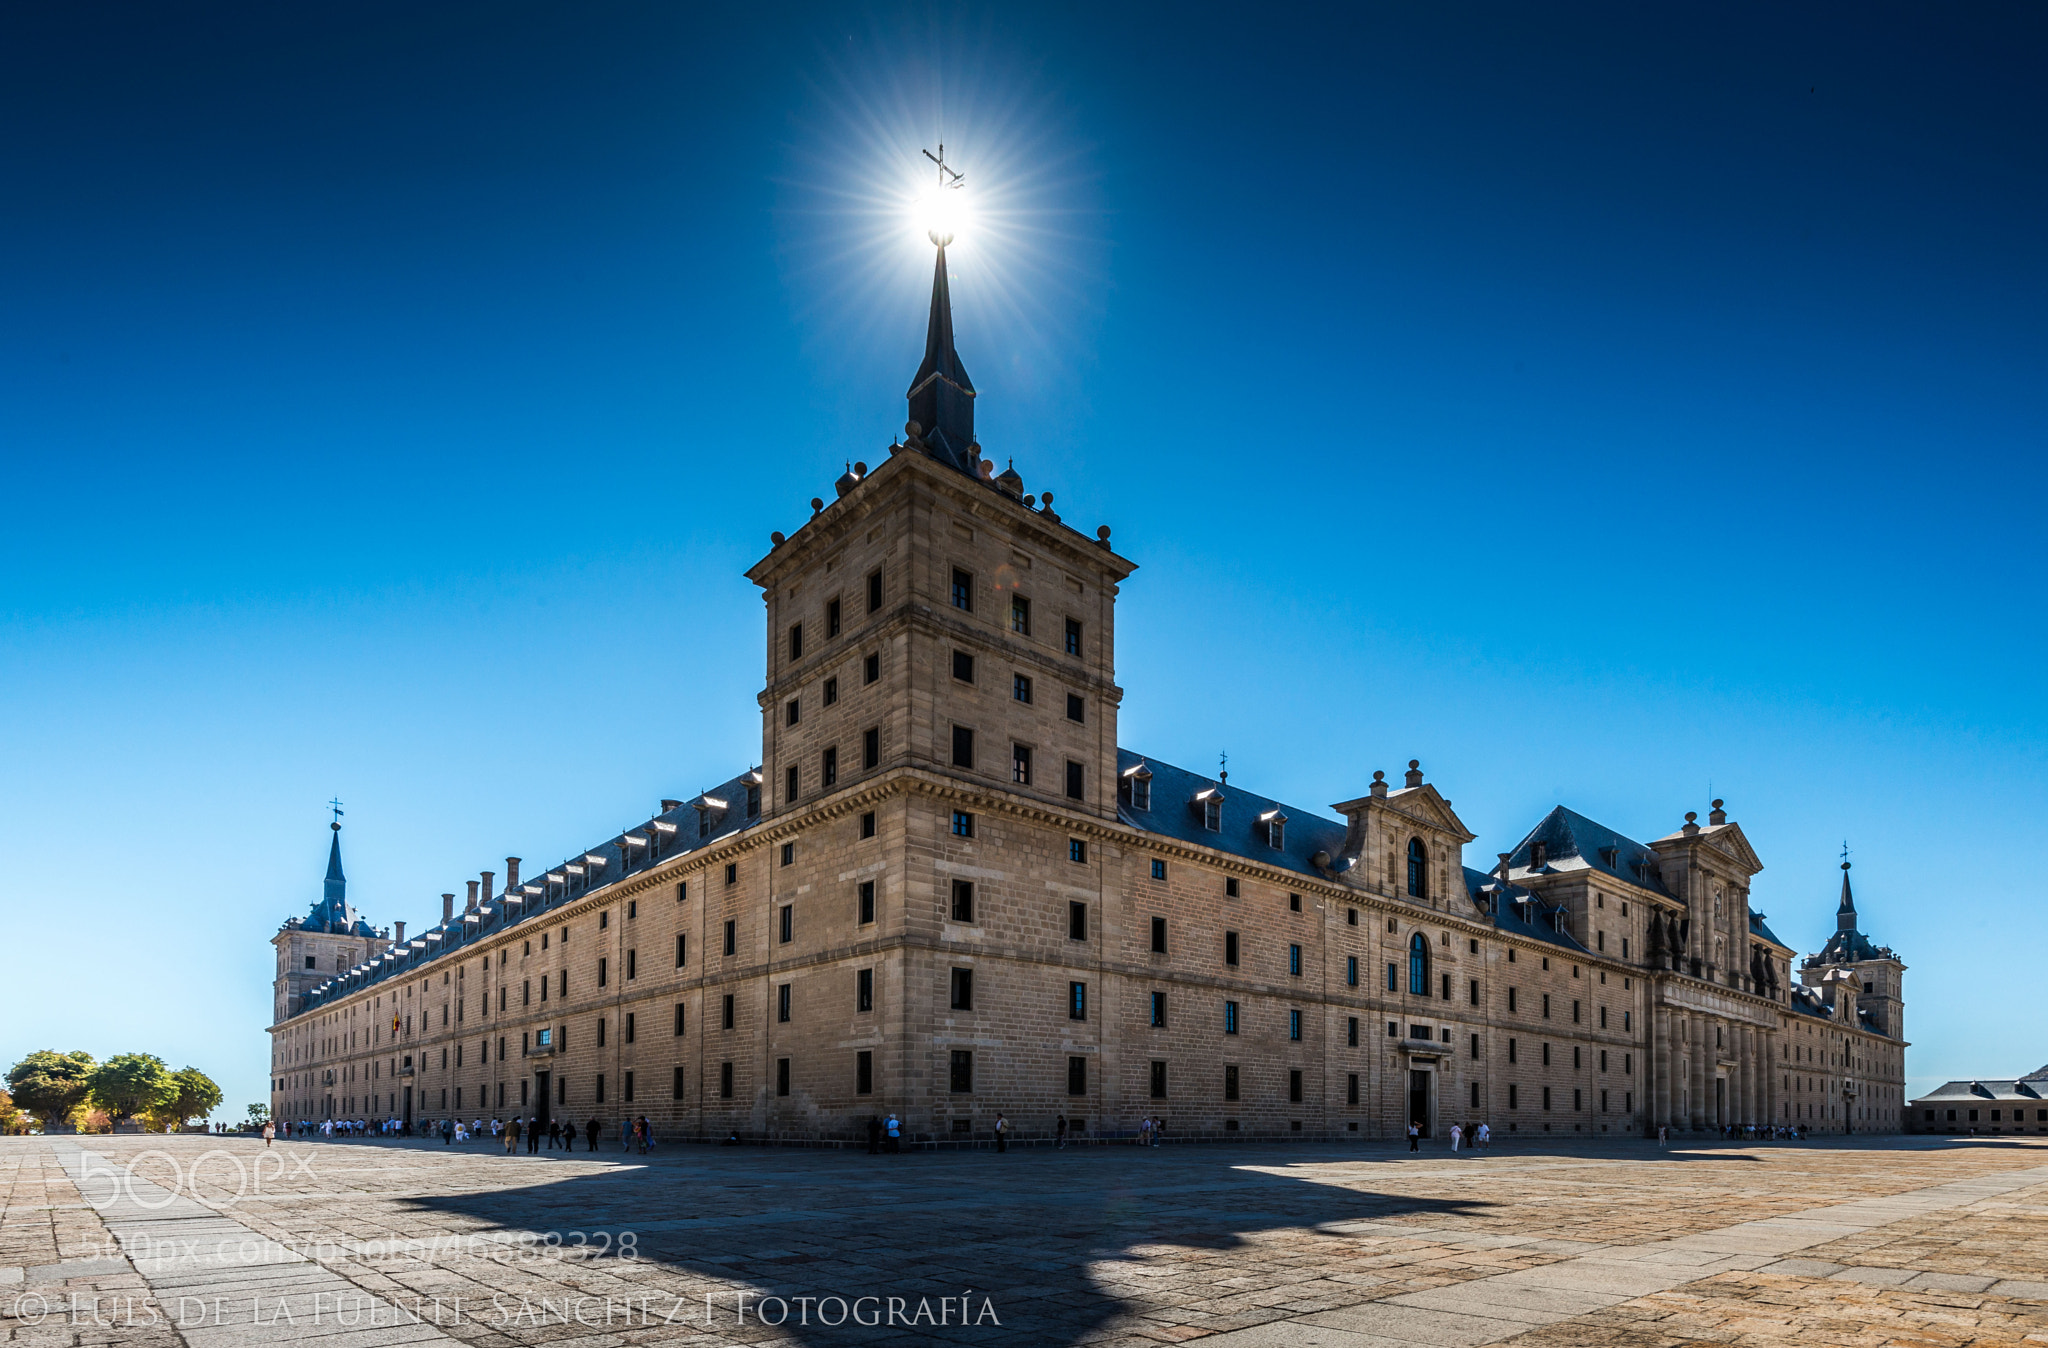 Photograph El Escorial by Luis  de la Fuente Sánchez on 500px